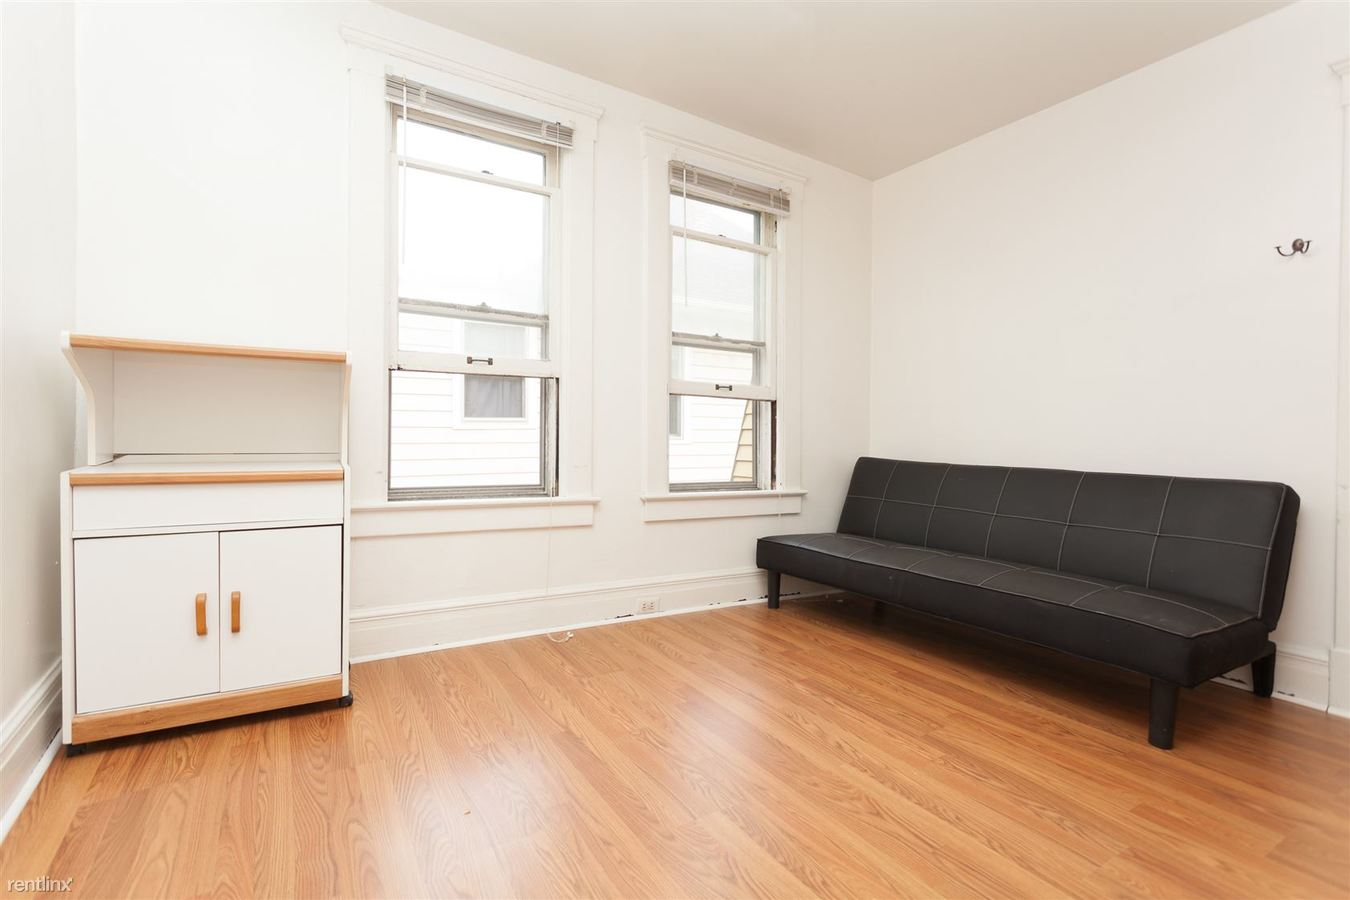 1 Bedroom 1 Bathroom Apartment for rent at 1130 Oakland Ave in Ann Arbor, MI